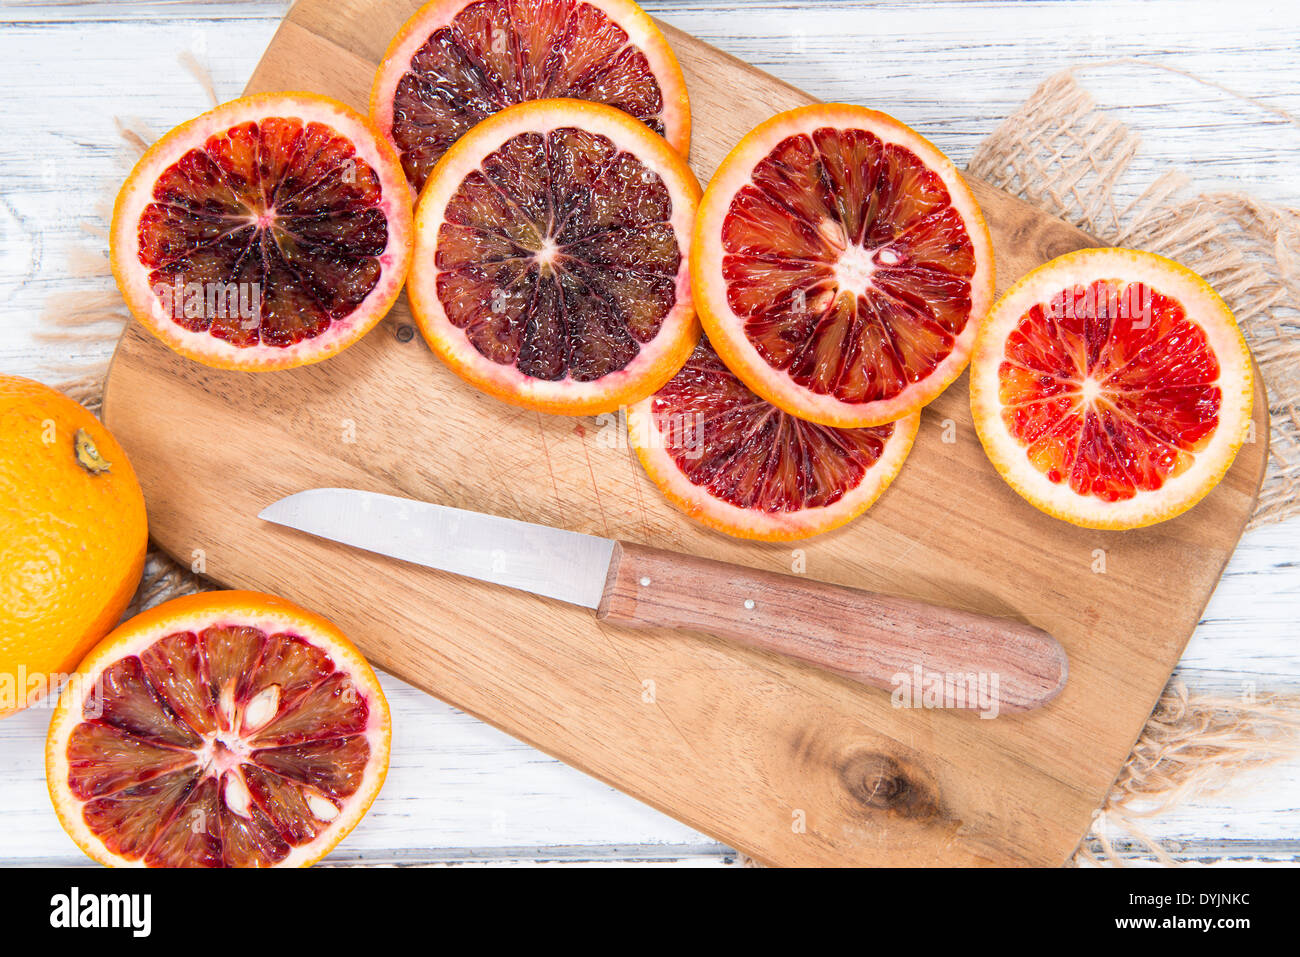 Fresh Blood Oranges on wooden background - Stock Image